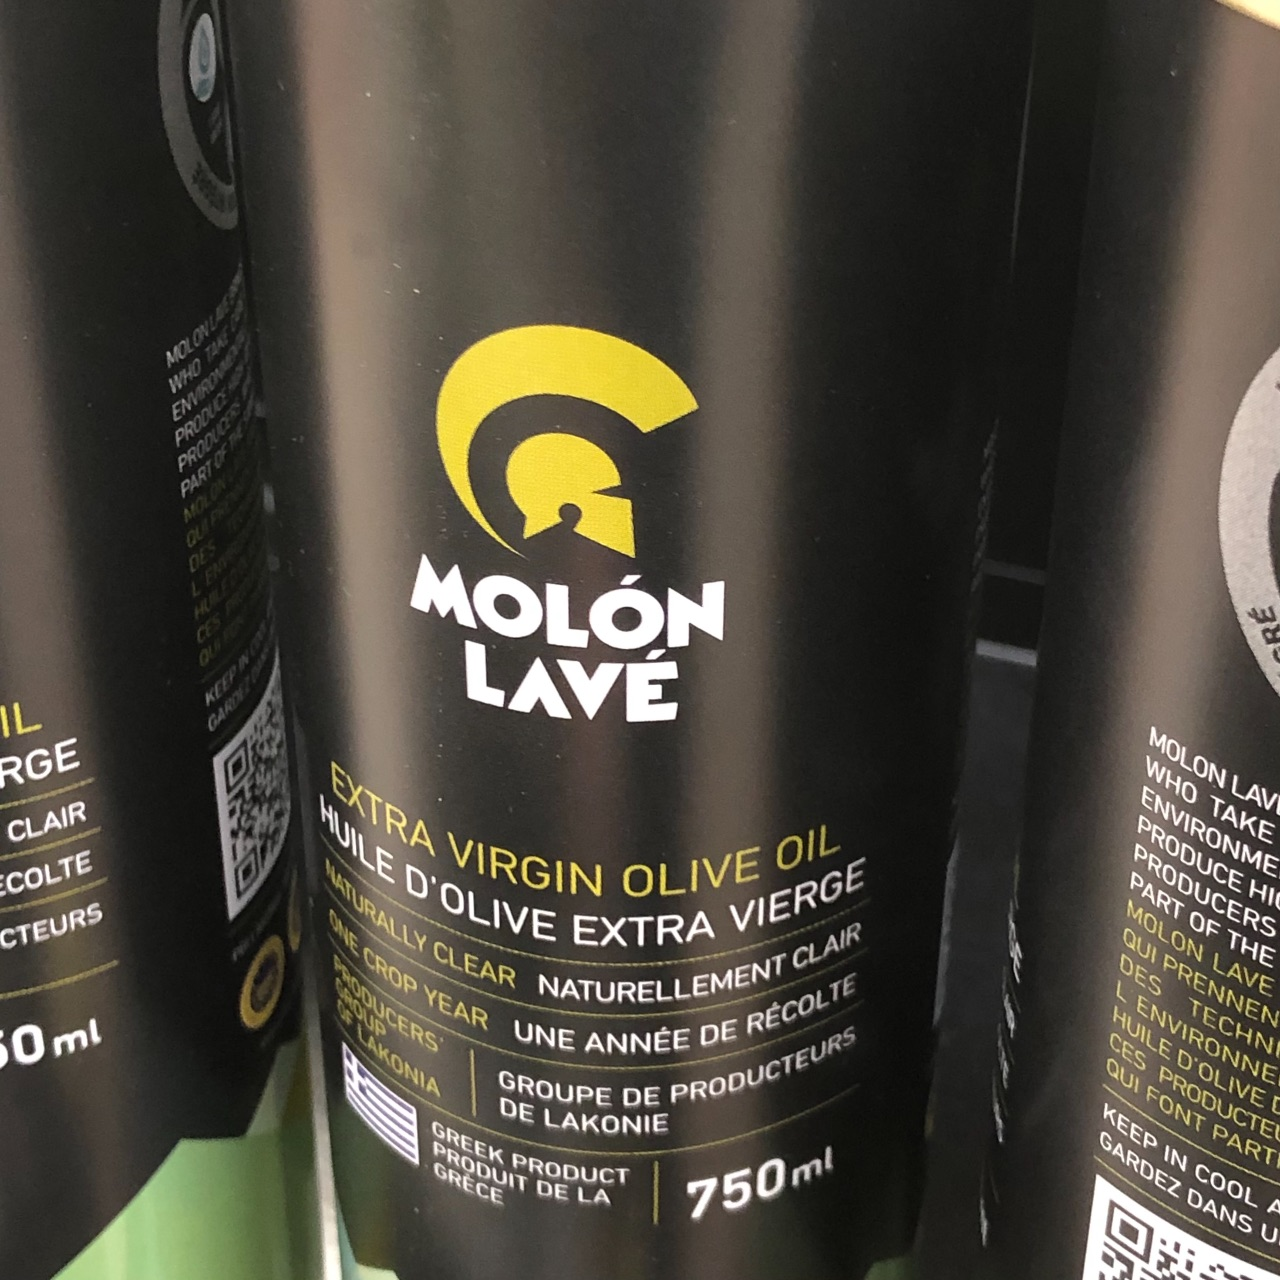 Photo of a bottle of olive oil called Molòn Lavè